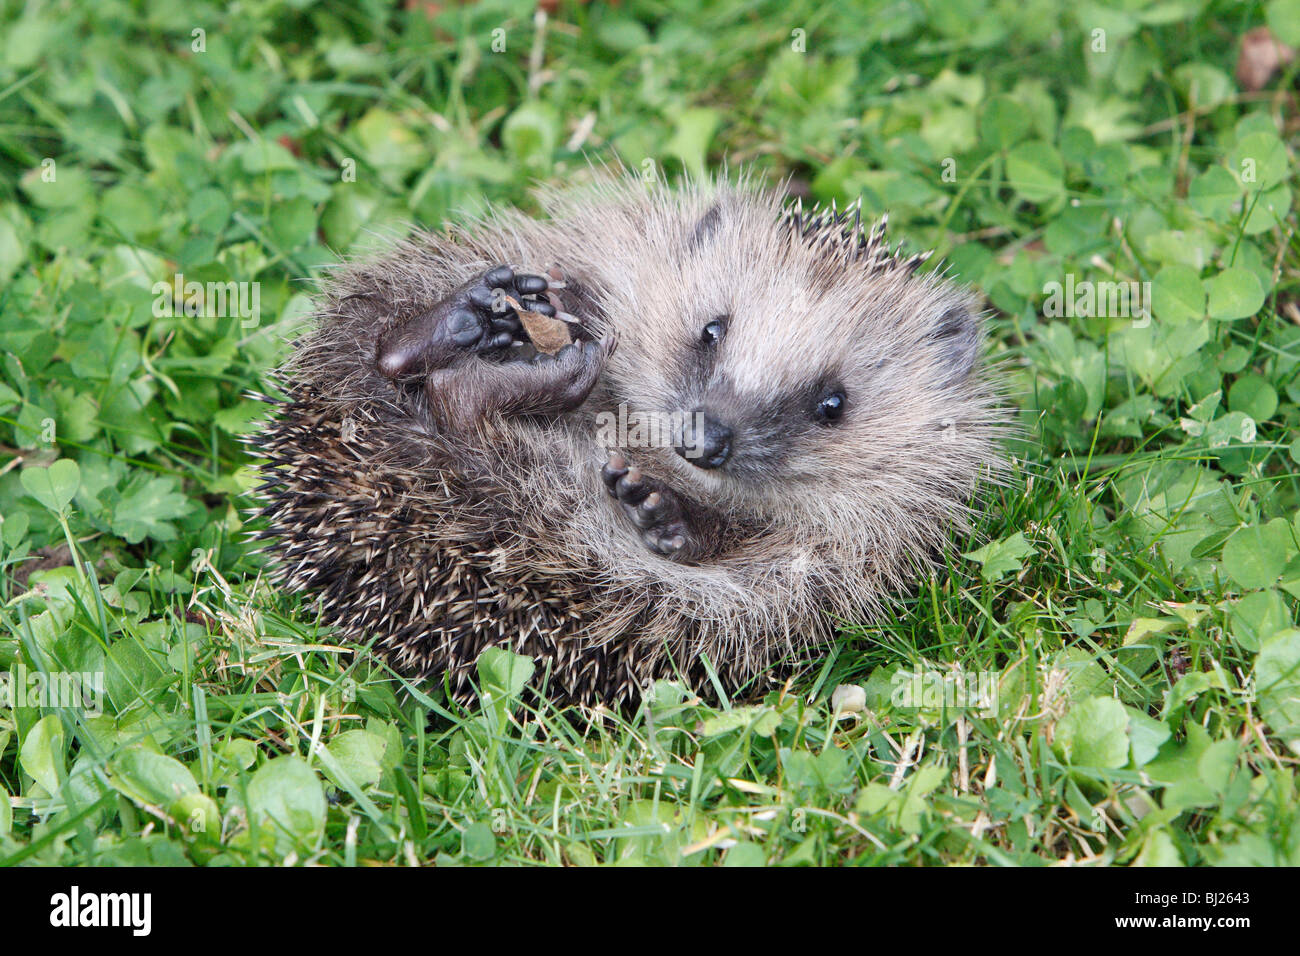 European Hedgehog (Erinaceus europaeus) young animal unrolling itself in garden - Stock Image